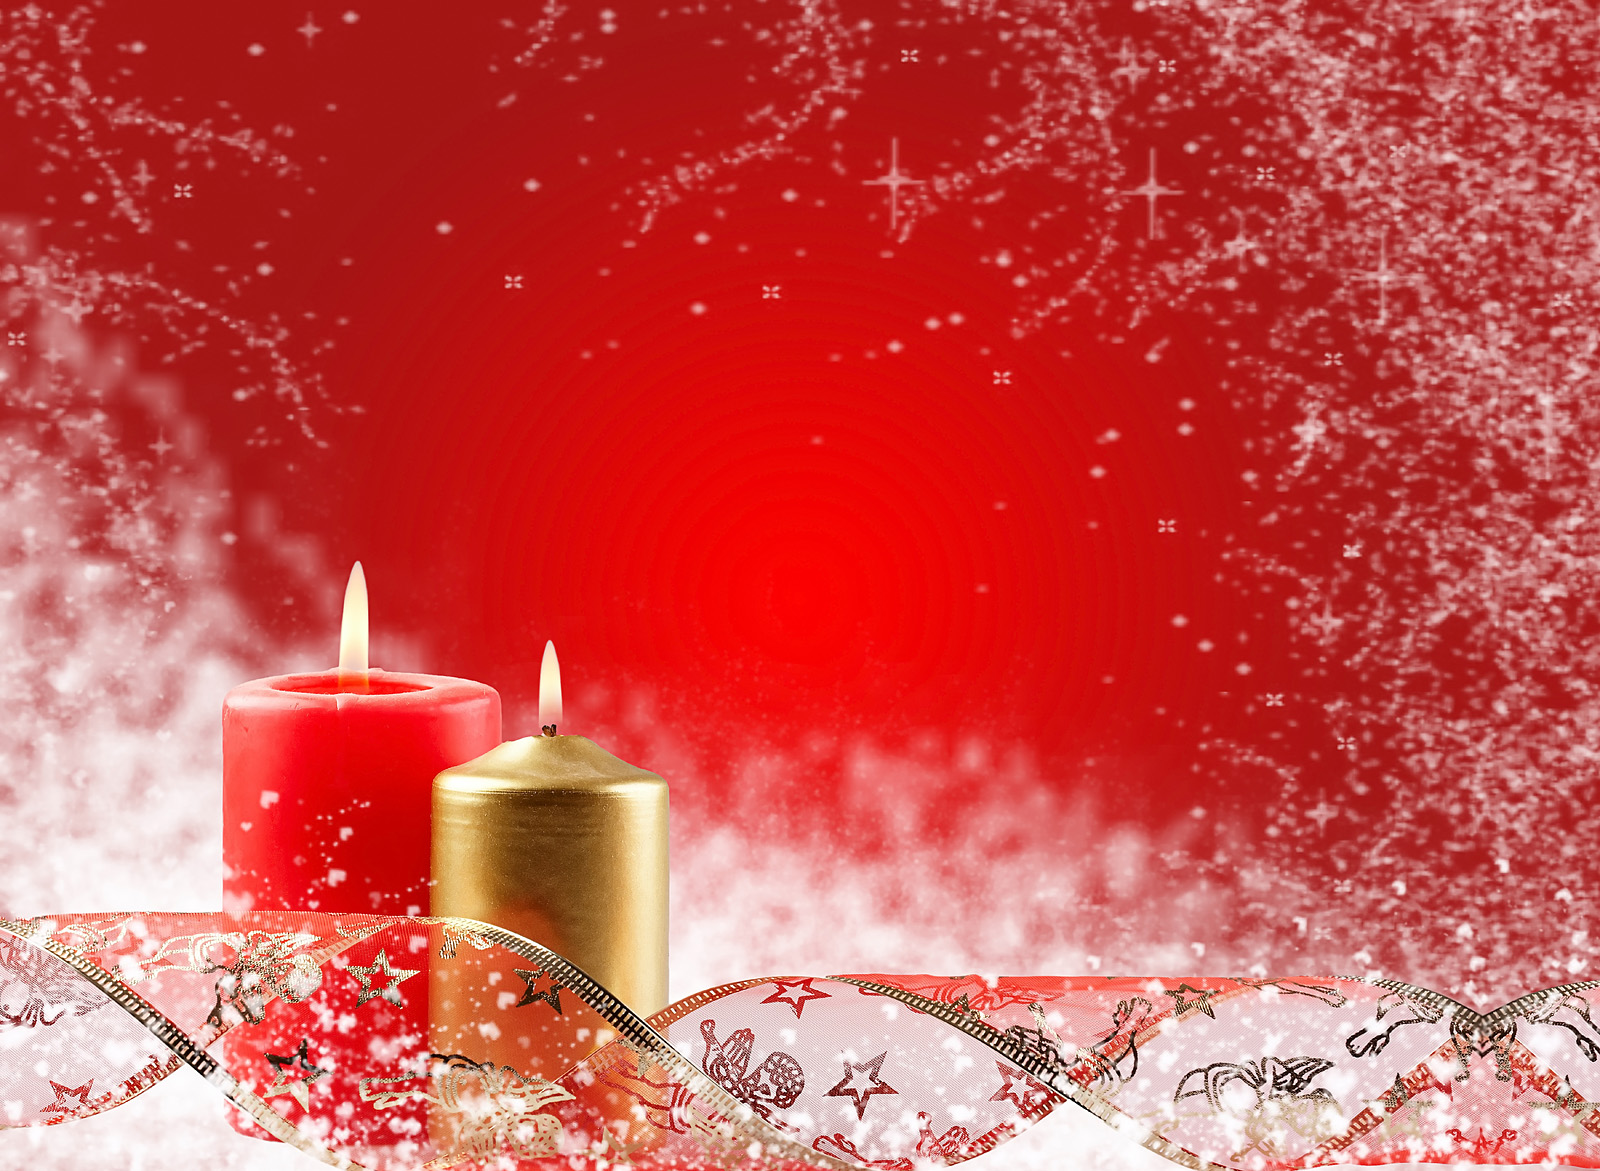 Christmas Backgrounds Free | Wallpapers9